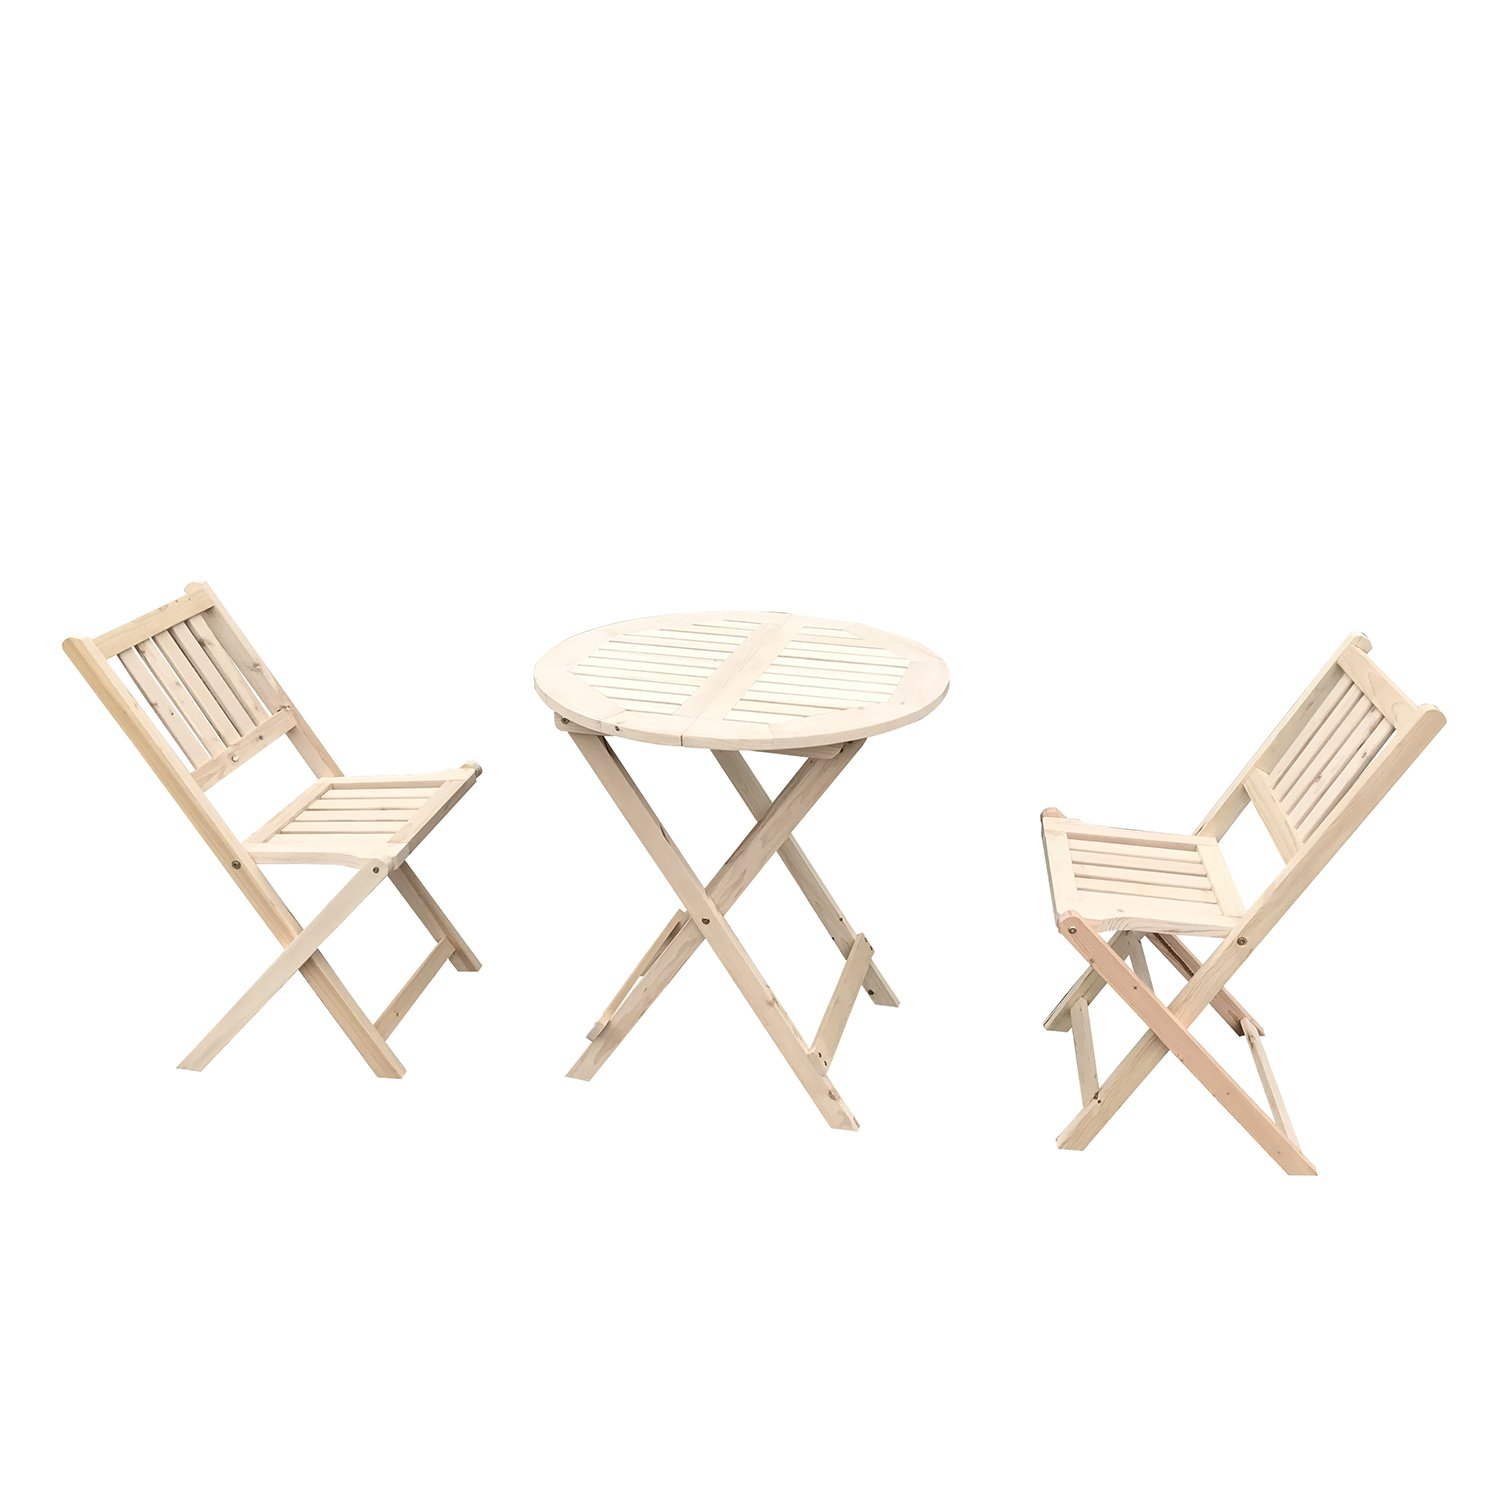 UHOM 3PCS Wooden Folding Chair and Table Outdoor Garden Wood Slat Seat Dining Set Deck Patio Bistro Furniture